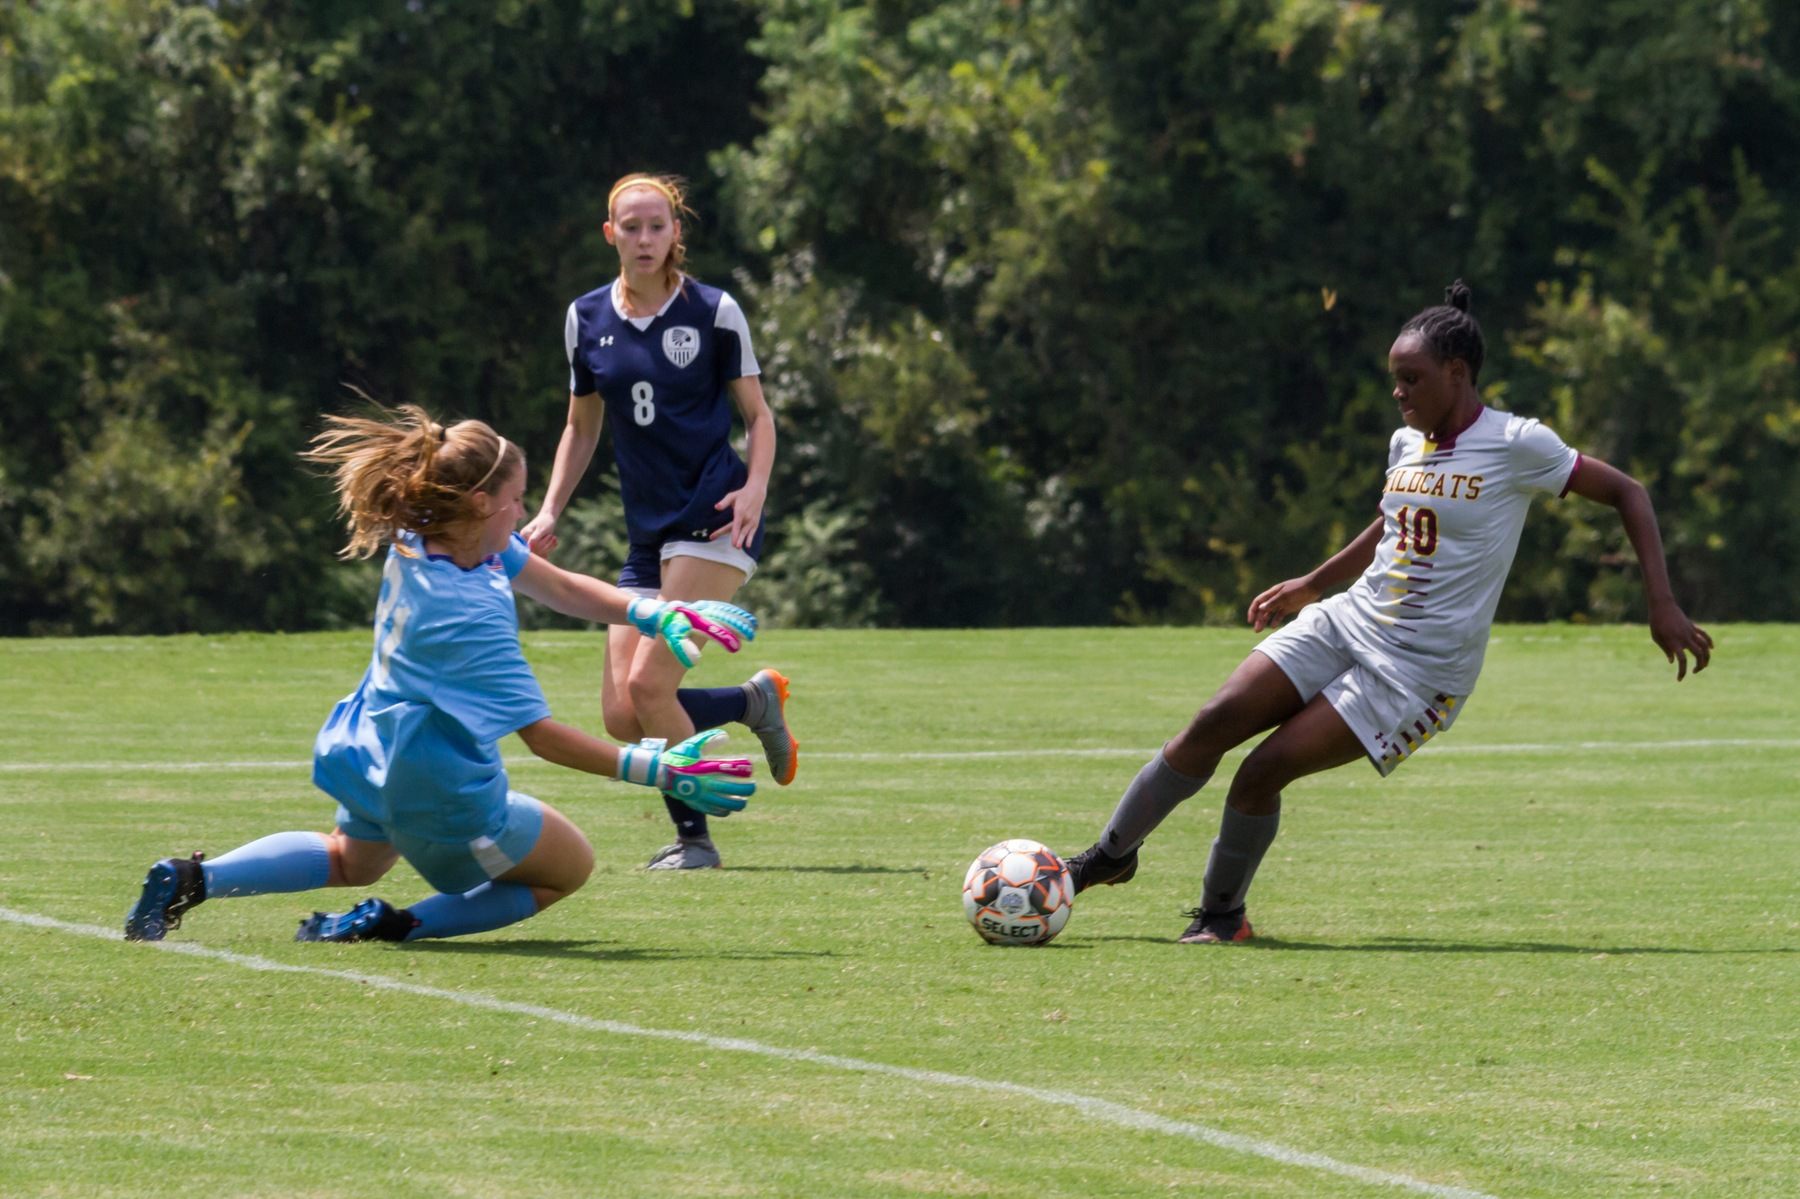 Rena Gordon nets another goal as PRCC falls to No. 12 Holmes